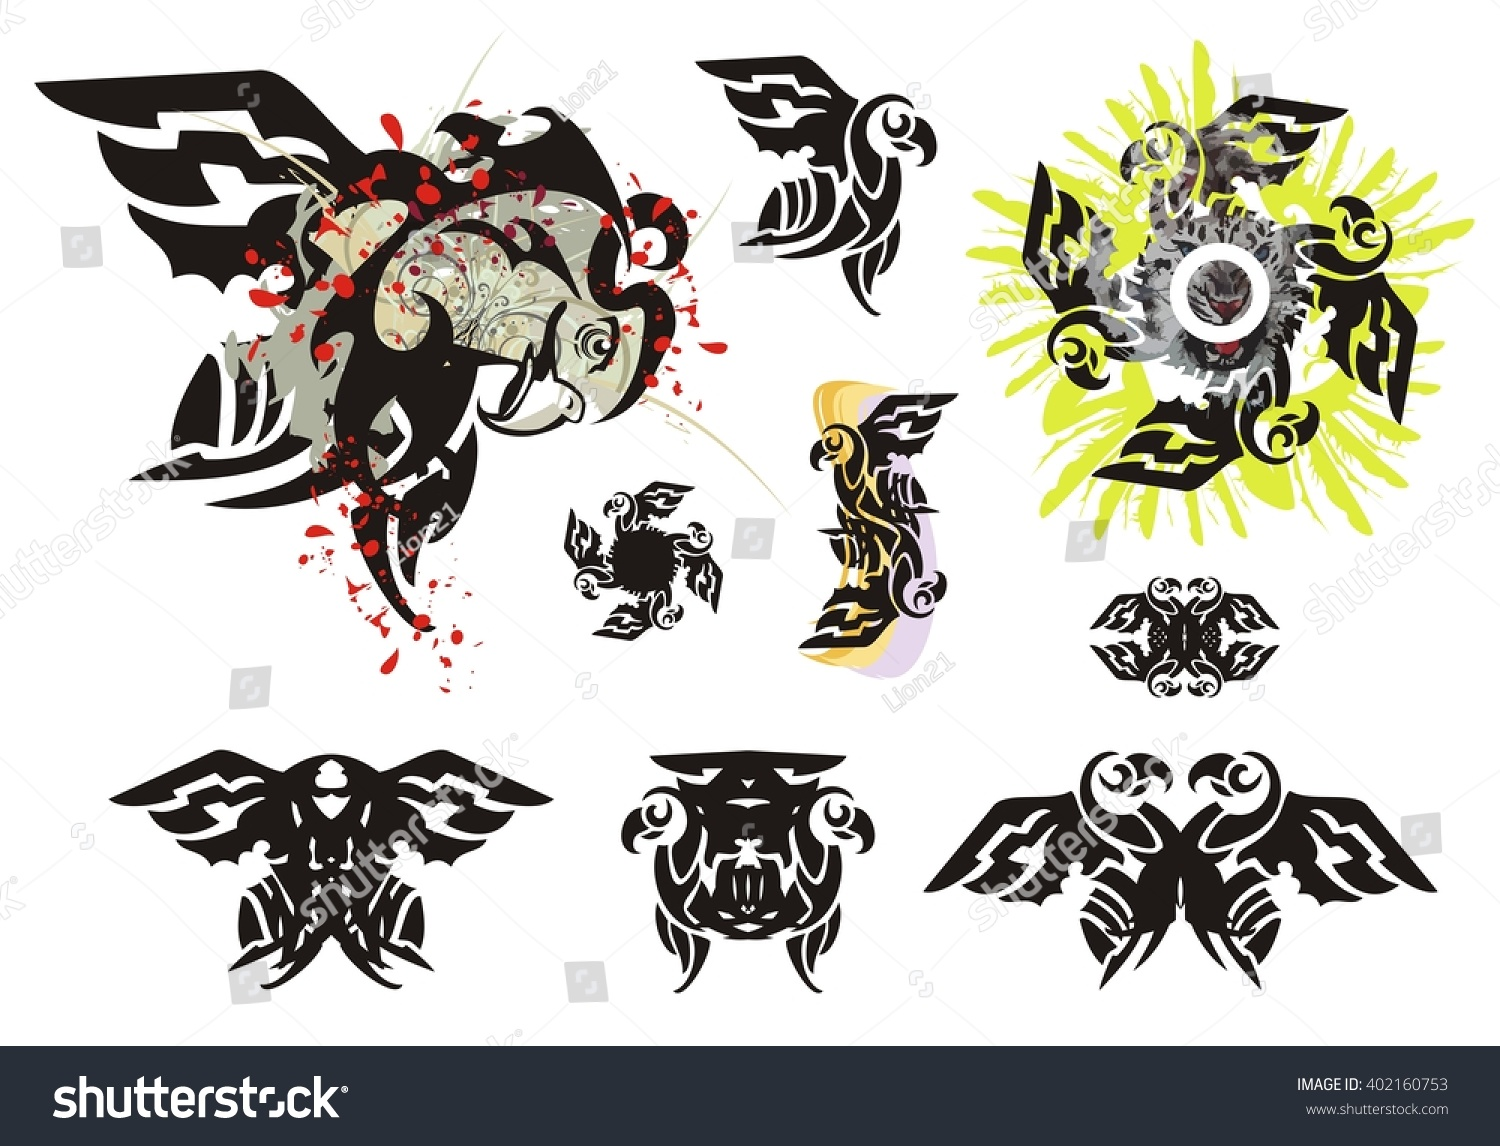 Eagle symbols tribal style grunge eagle stock vector for Blood drop tattoo